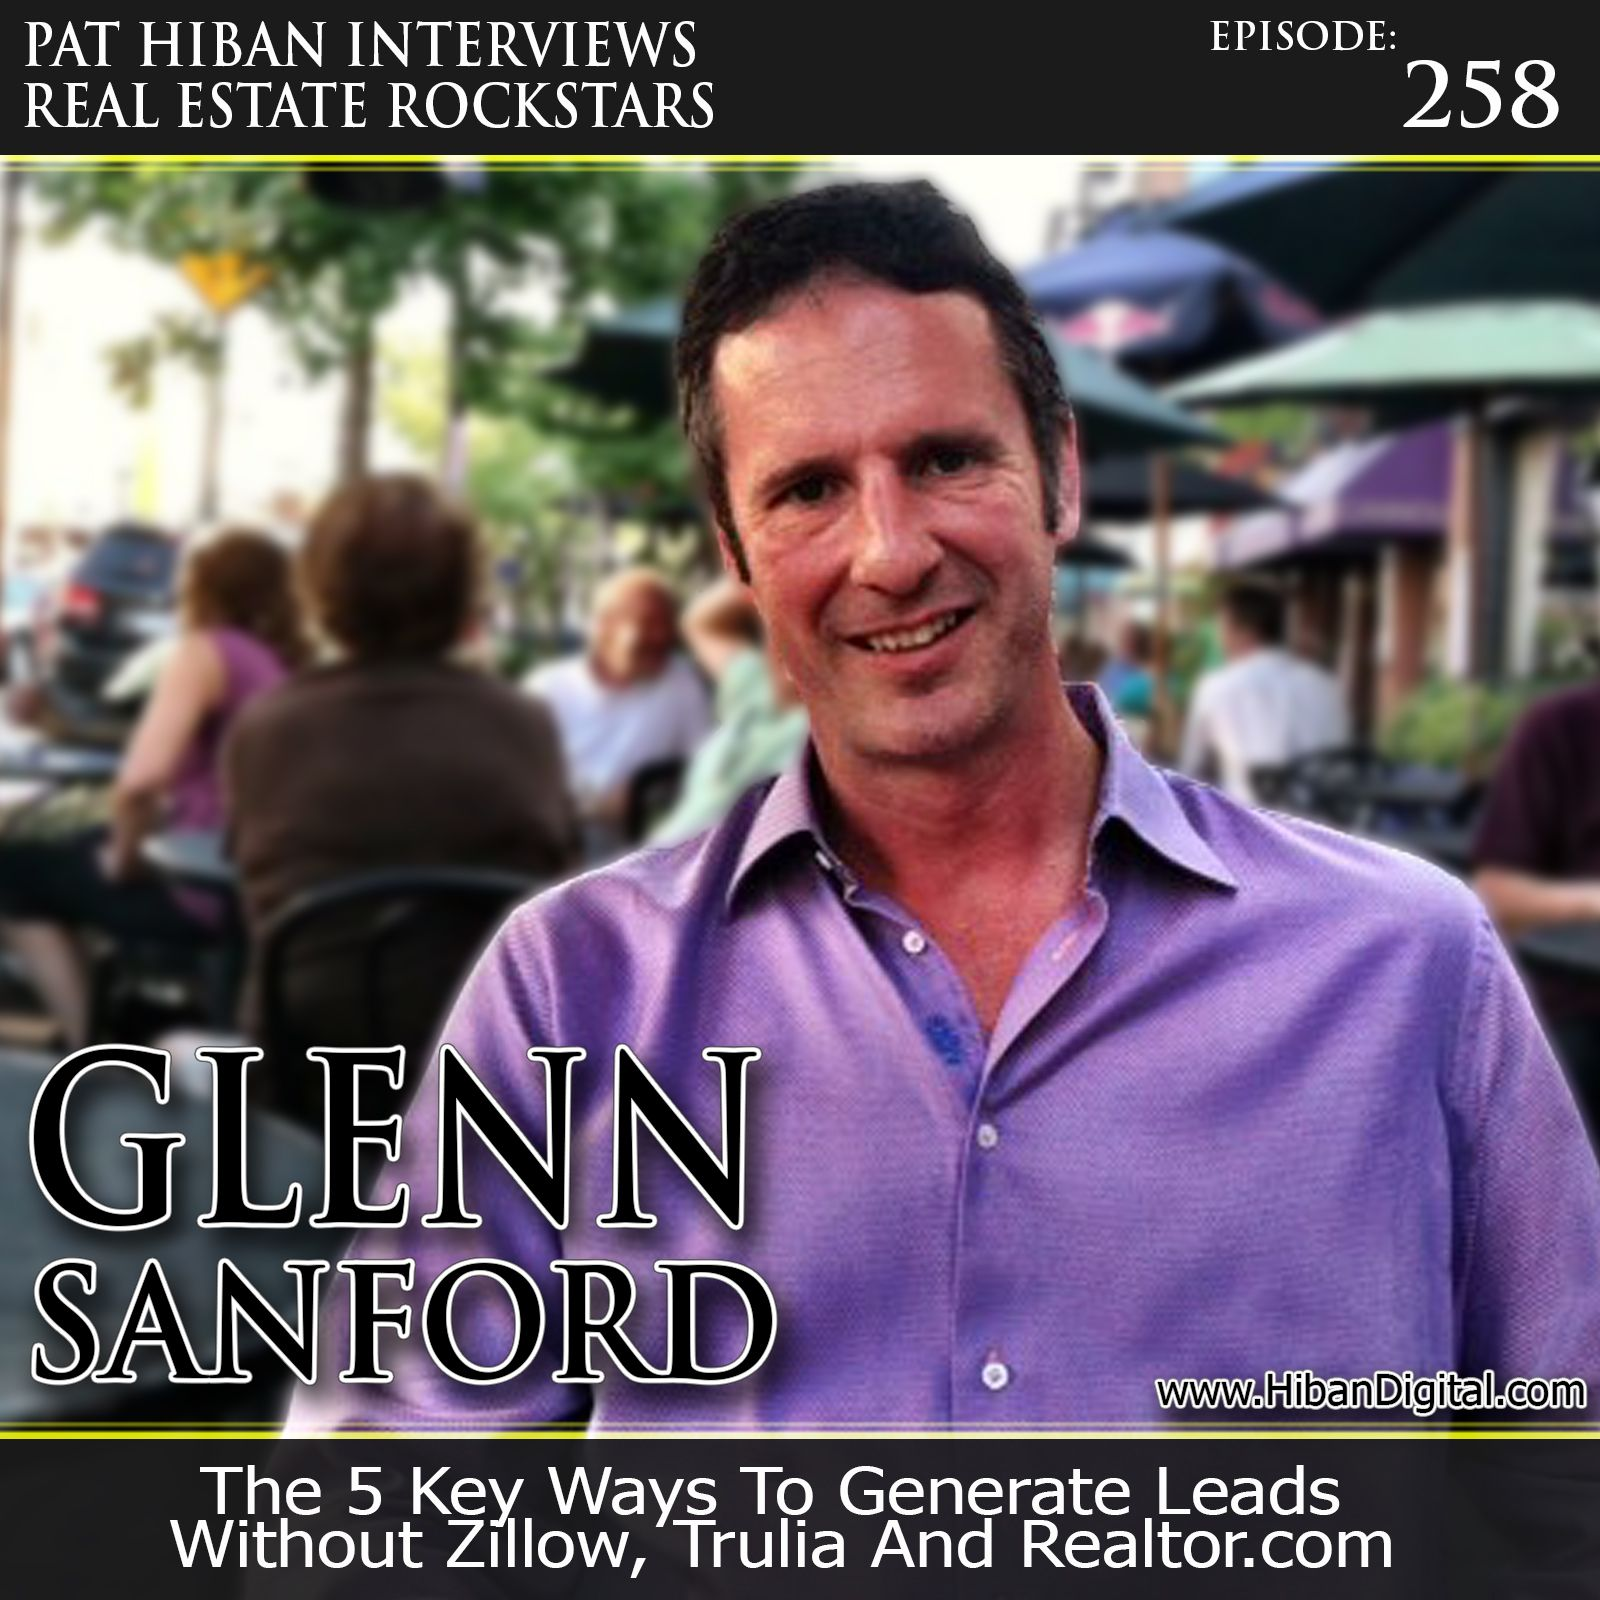 "Glenn Sanford is the founder and CEO of eXp Realty, ""The Agent-owned Cloud Brokerage™"". After being involved with a number of internet start-ups in the 1990's and early 2000's... #realestate #podcast #pathiban #hibandigital #hibangroup #HIBAN #realestatesales #realestateagent #realestateagents #selling #sales #sell #salespeople #salesperson #glennsanford"